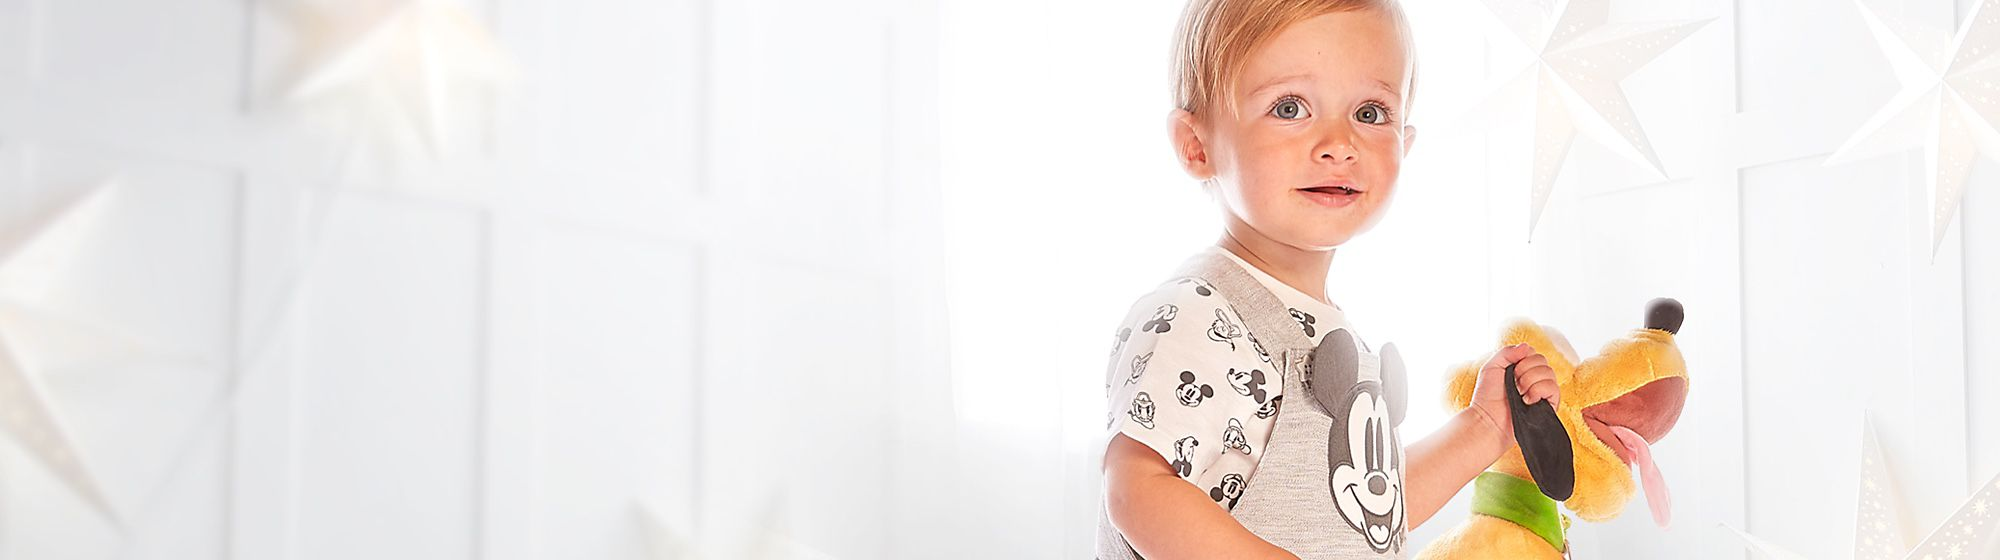 Baby Boys' Clothing Explore our exciting collection of clothing, costumes and more